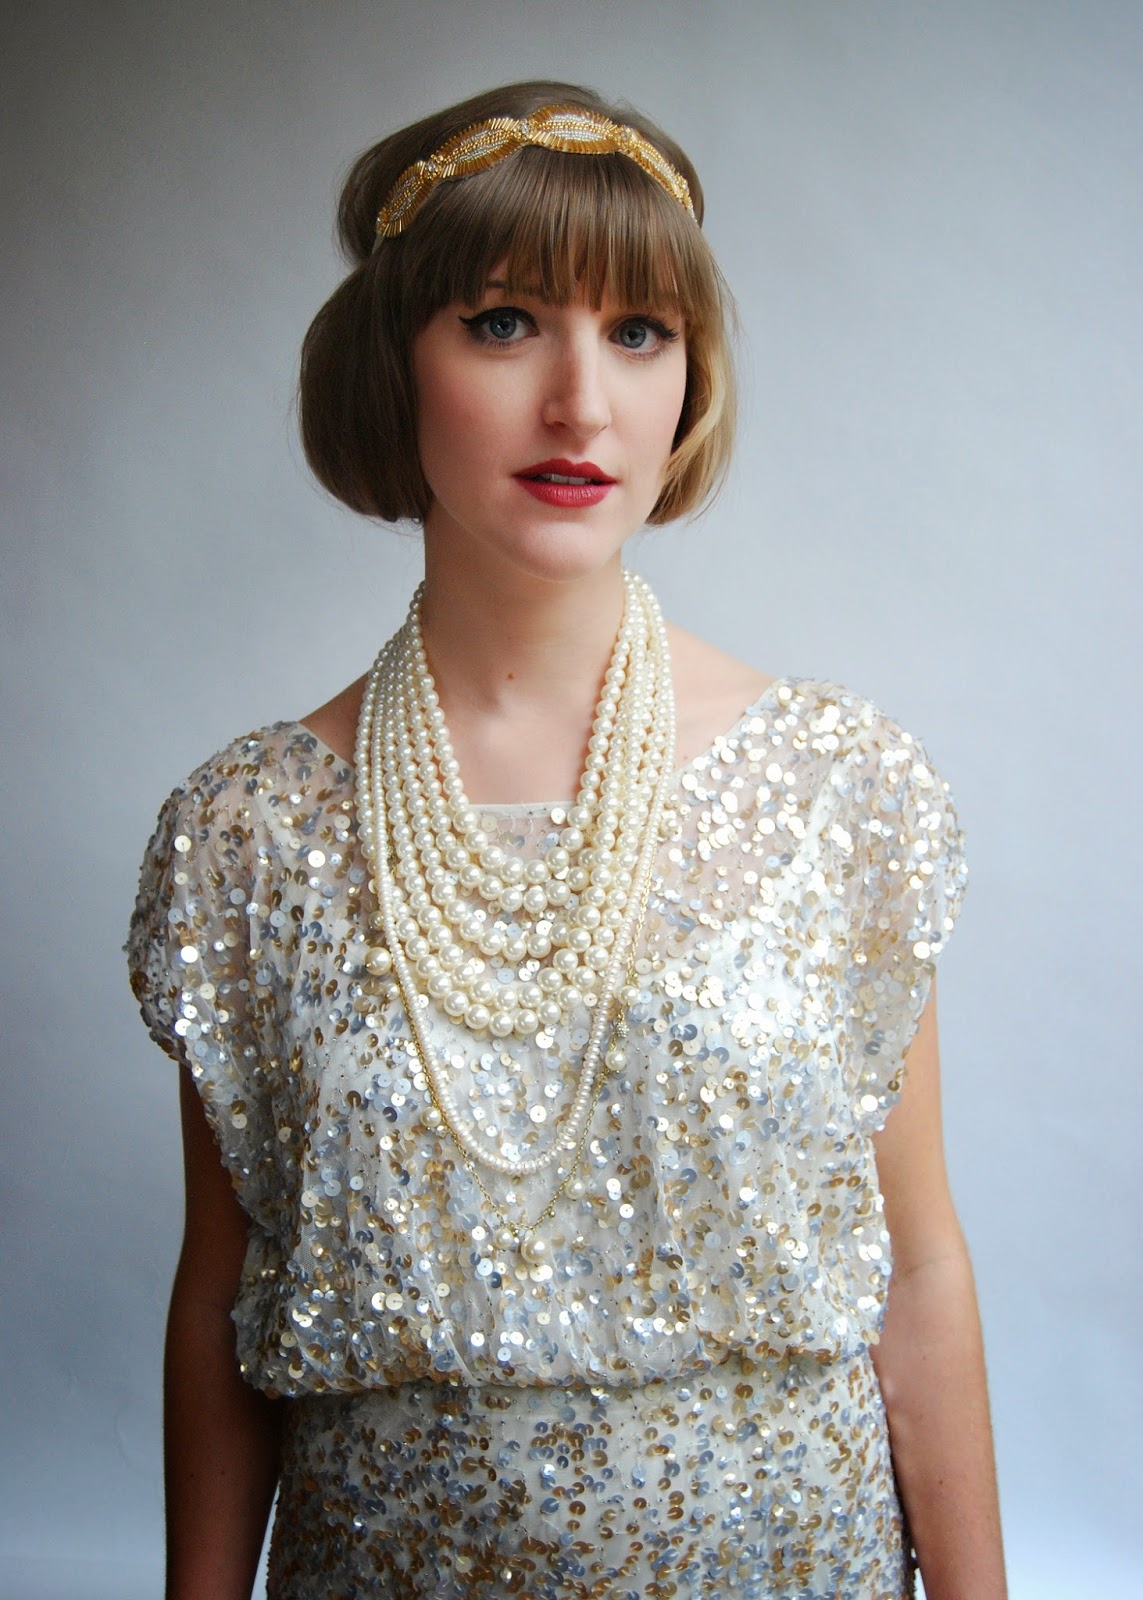 A 1920s great gatsby inspired modern party dress create enjoy source solutioingenieria